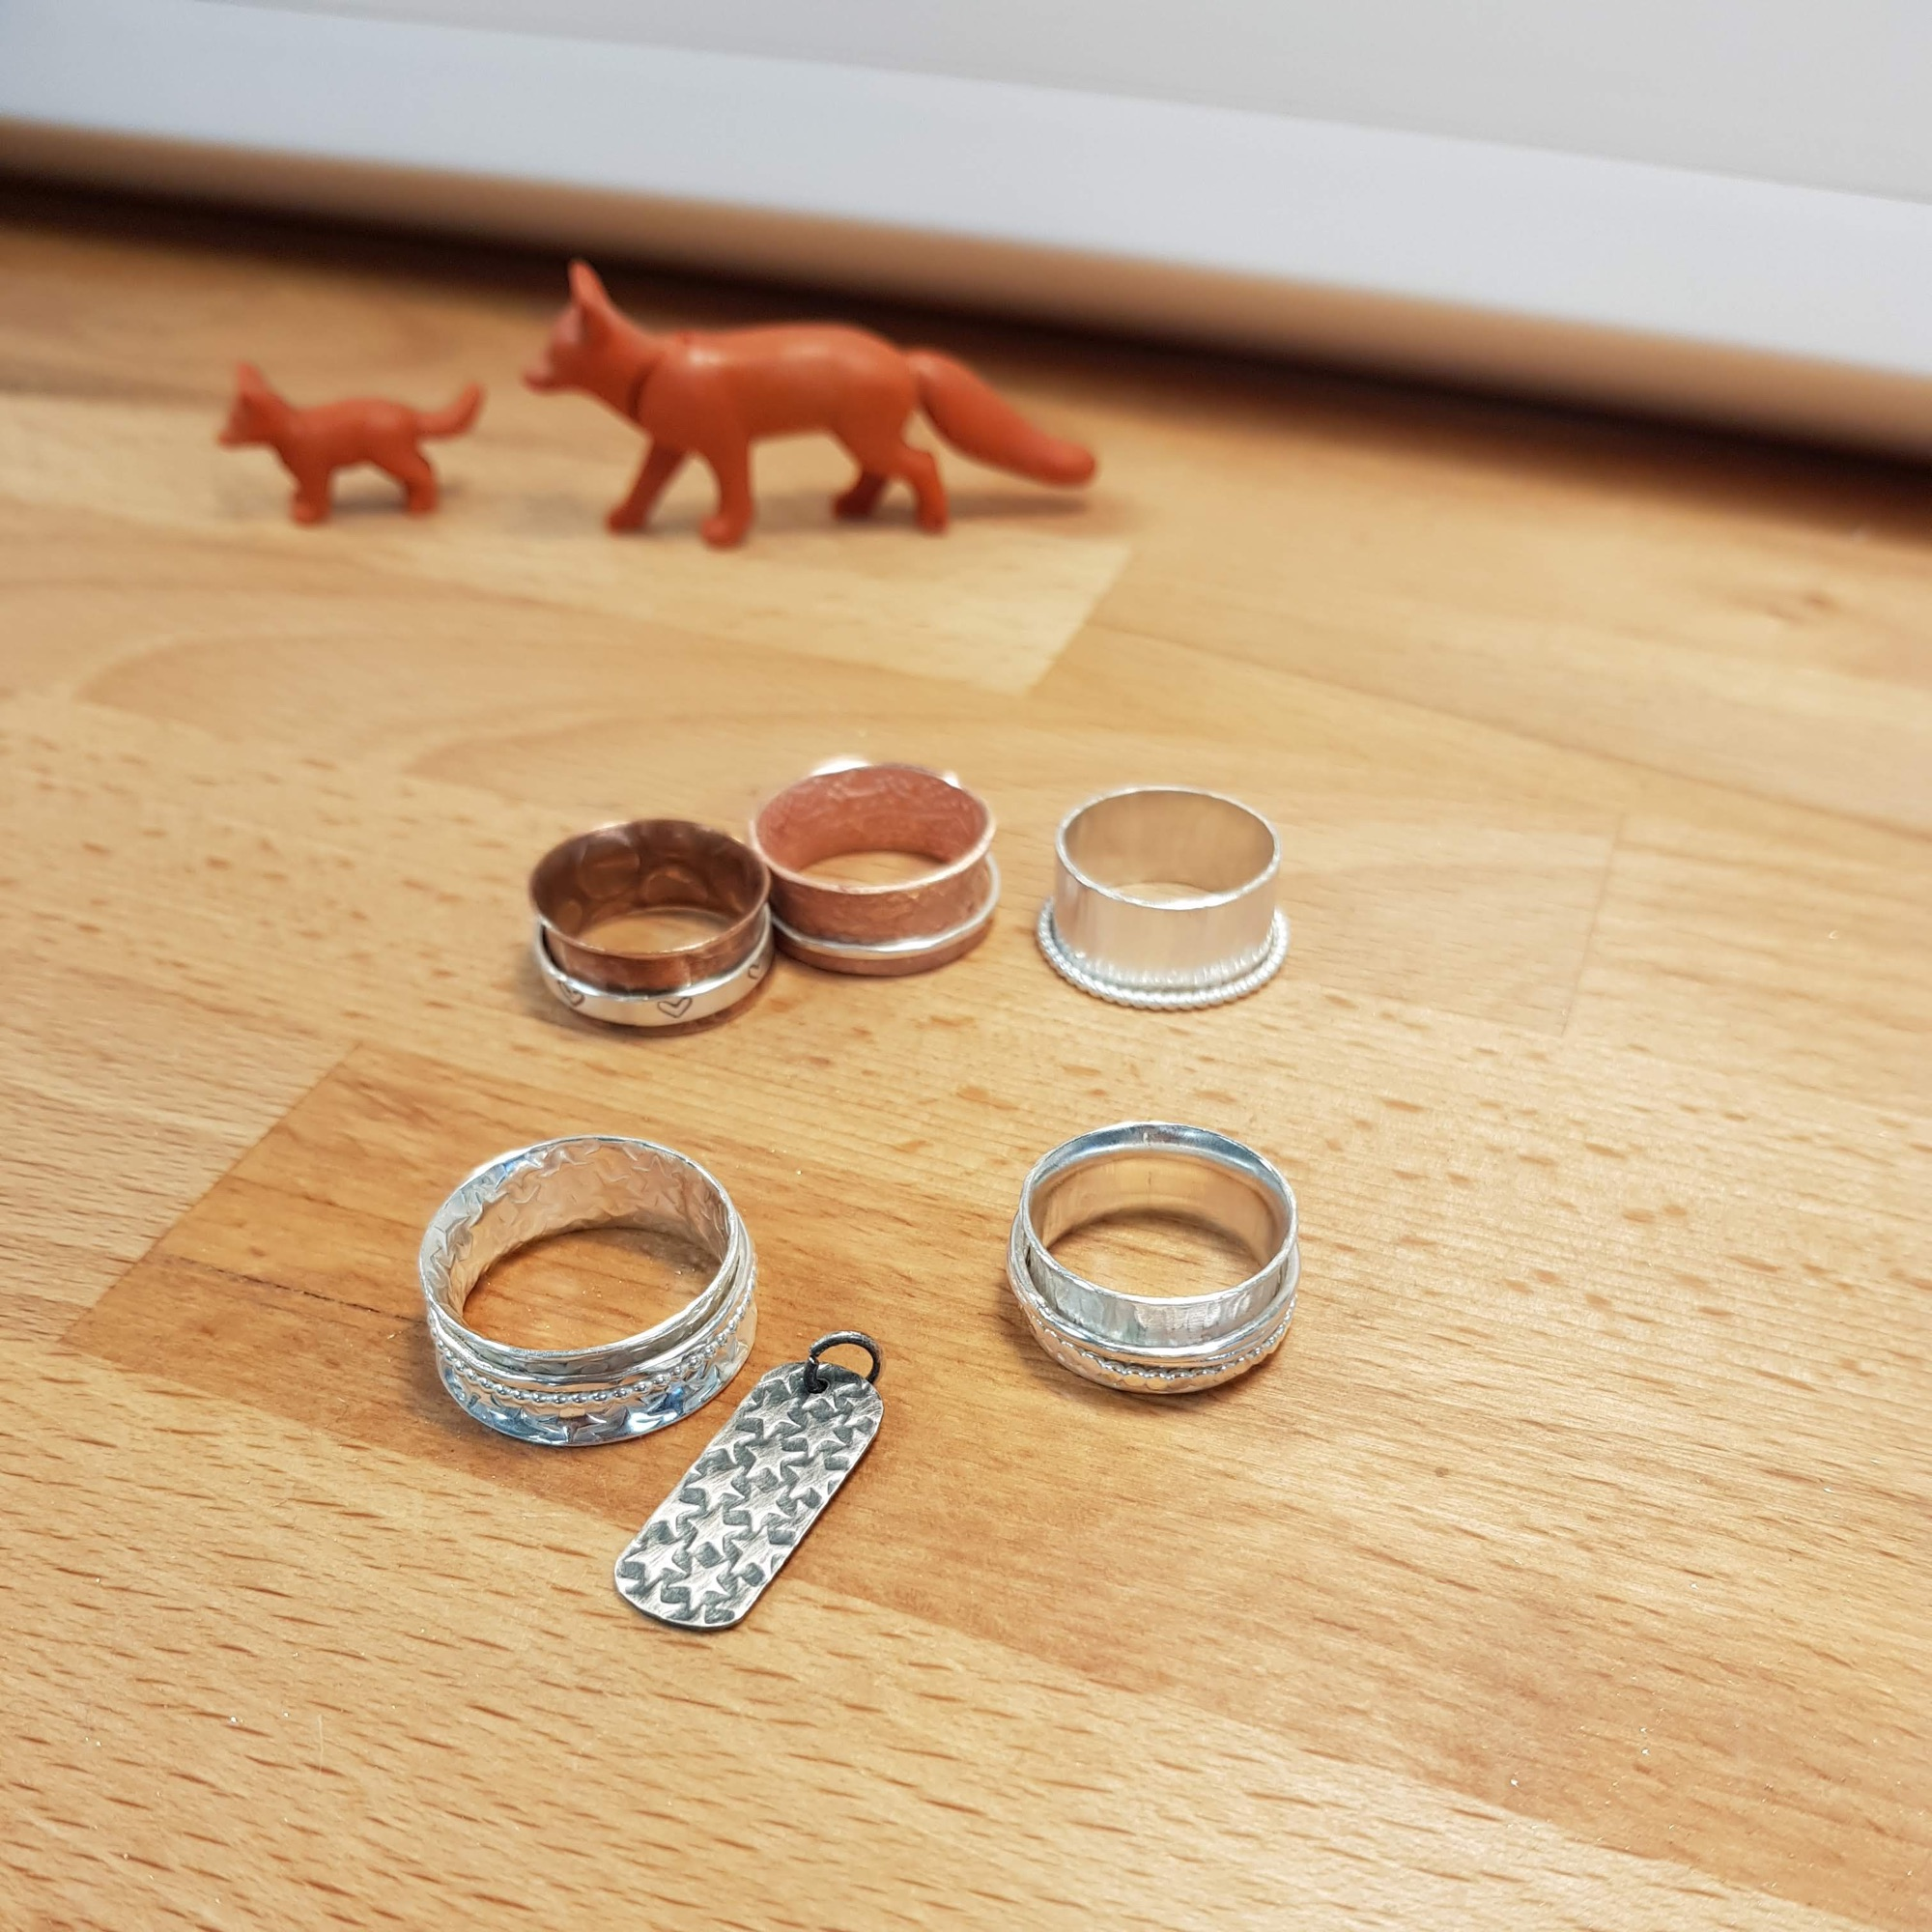 Spinner ring workshop, Warrington